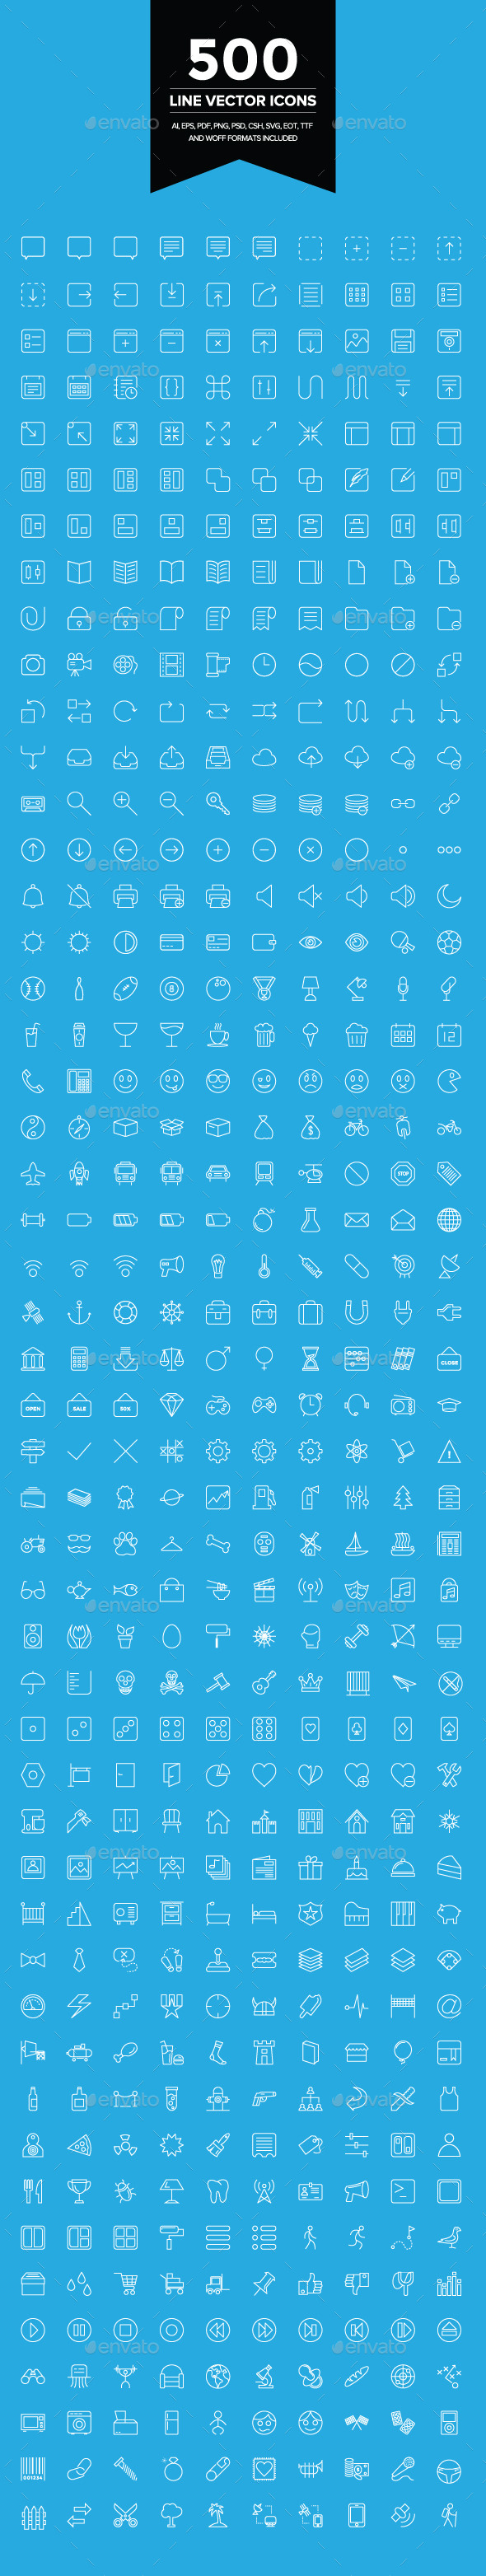 500 Line Vector Icons - Web Icons